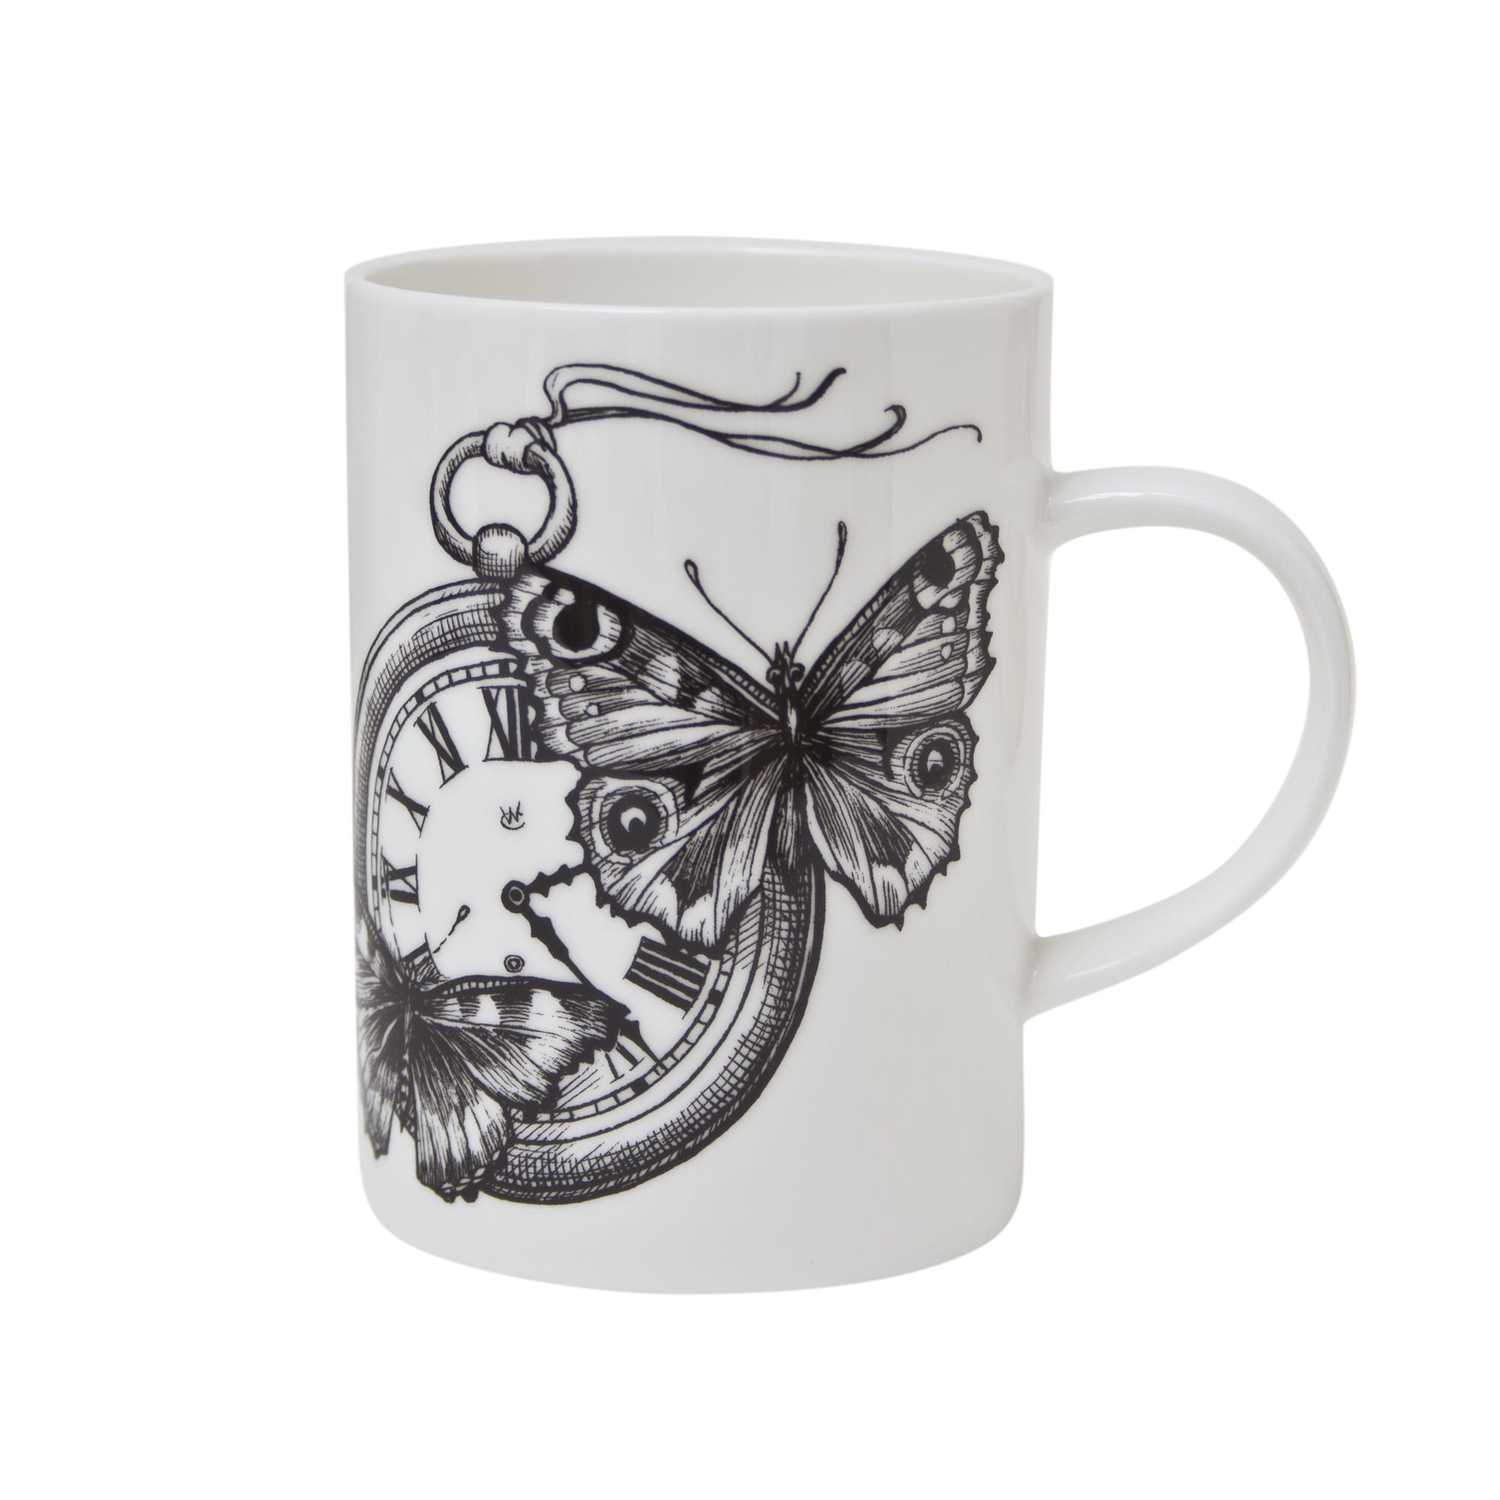 Clock with two butterflies ink design on white fine bone china mug